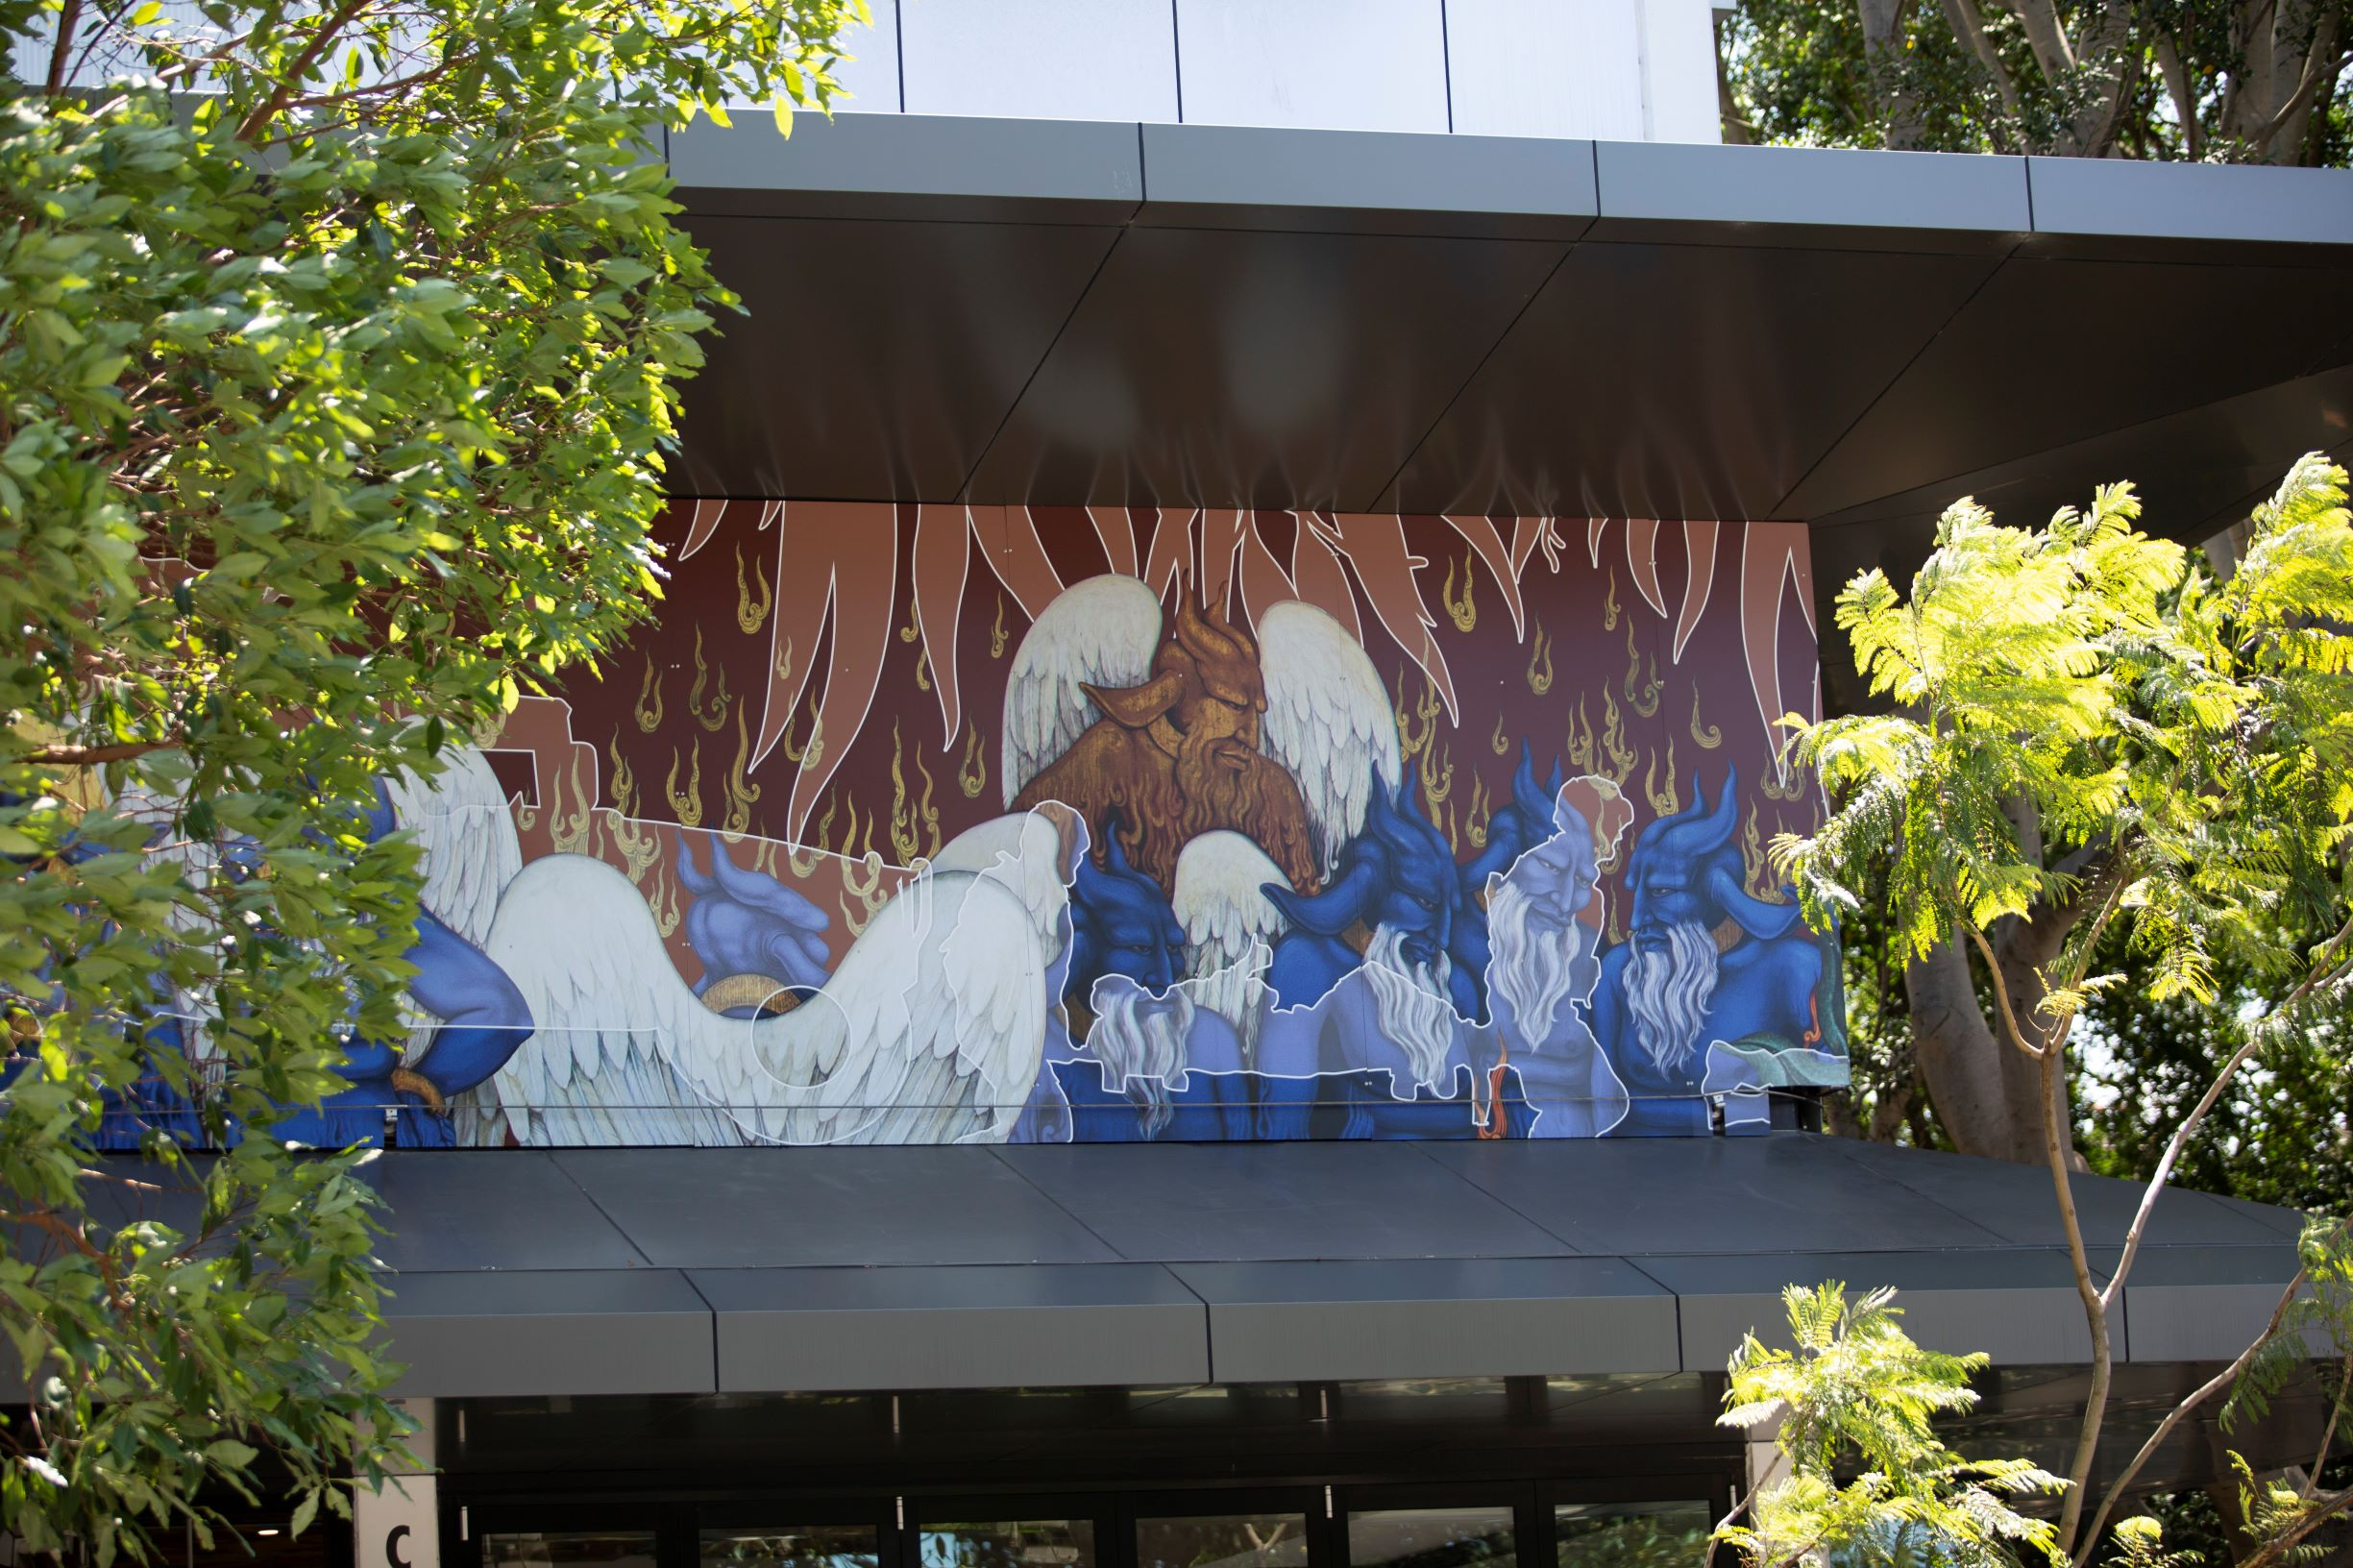 Khadim Ali's mural Every War is Defeat at UNSW Art & Design. Photo by Marty Jamieson